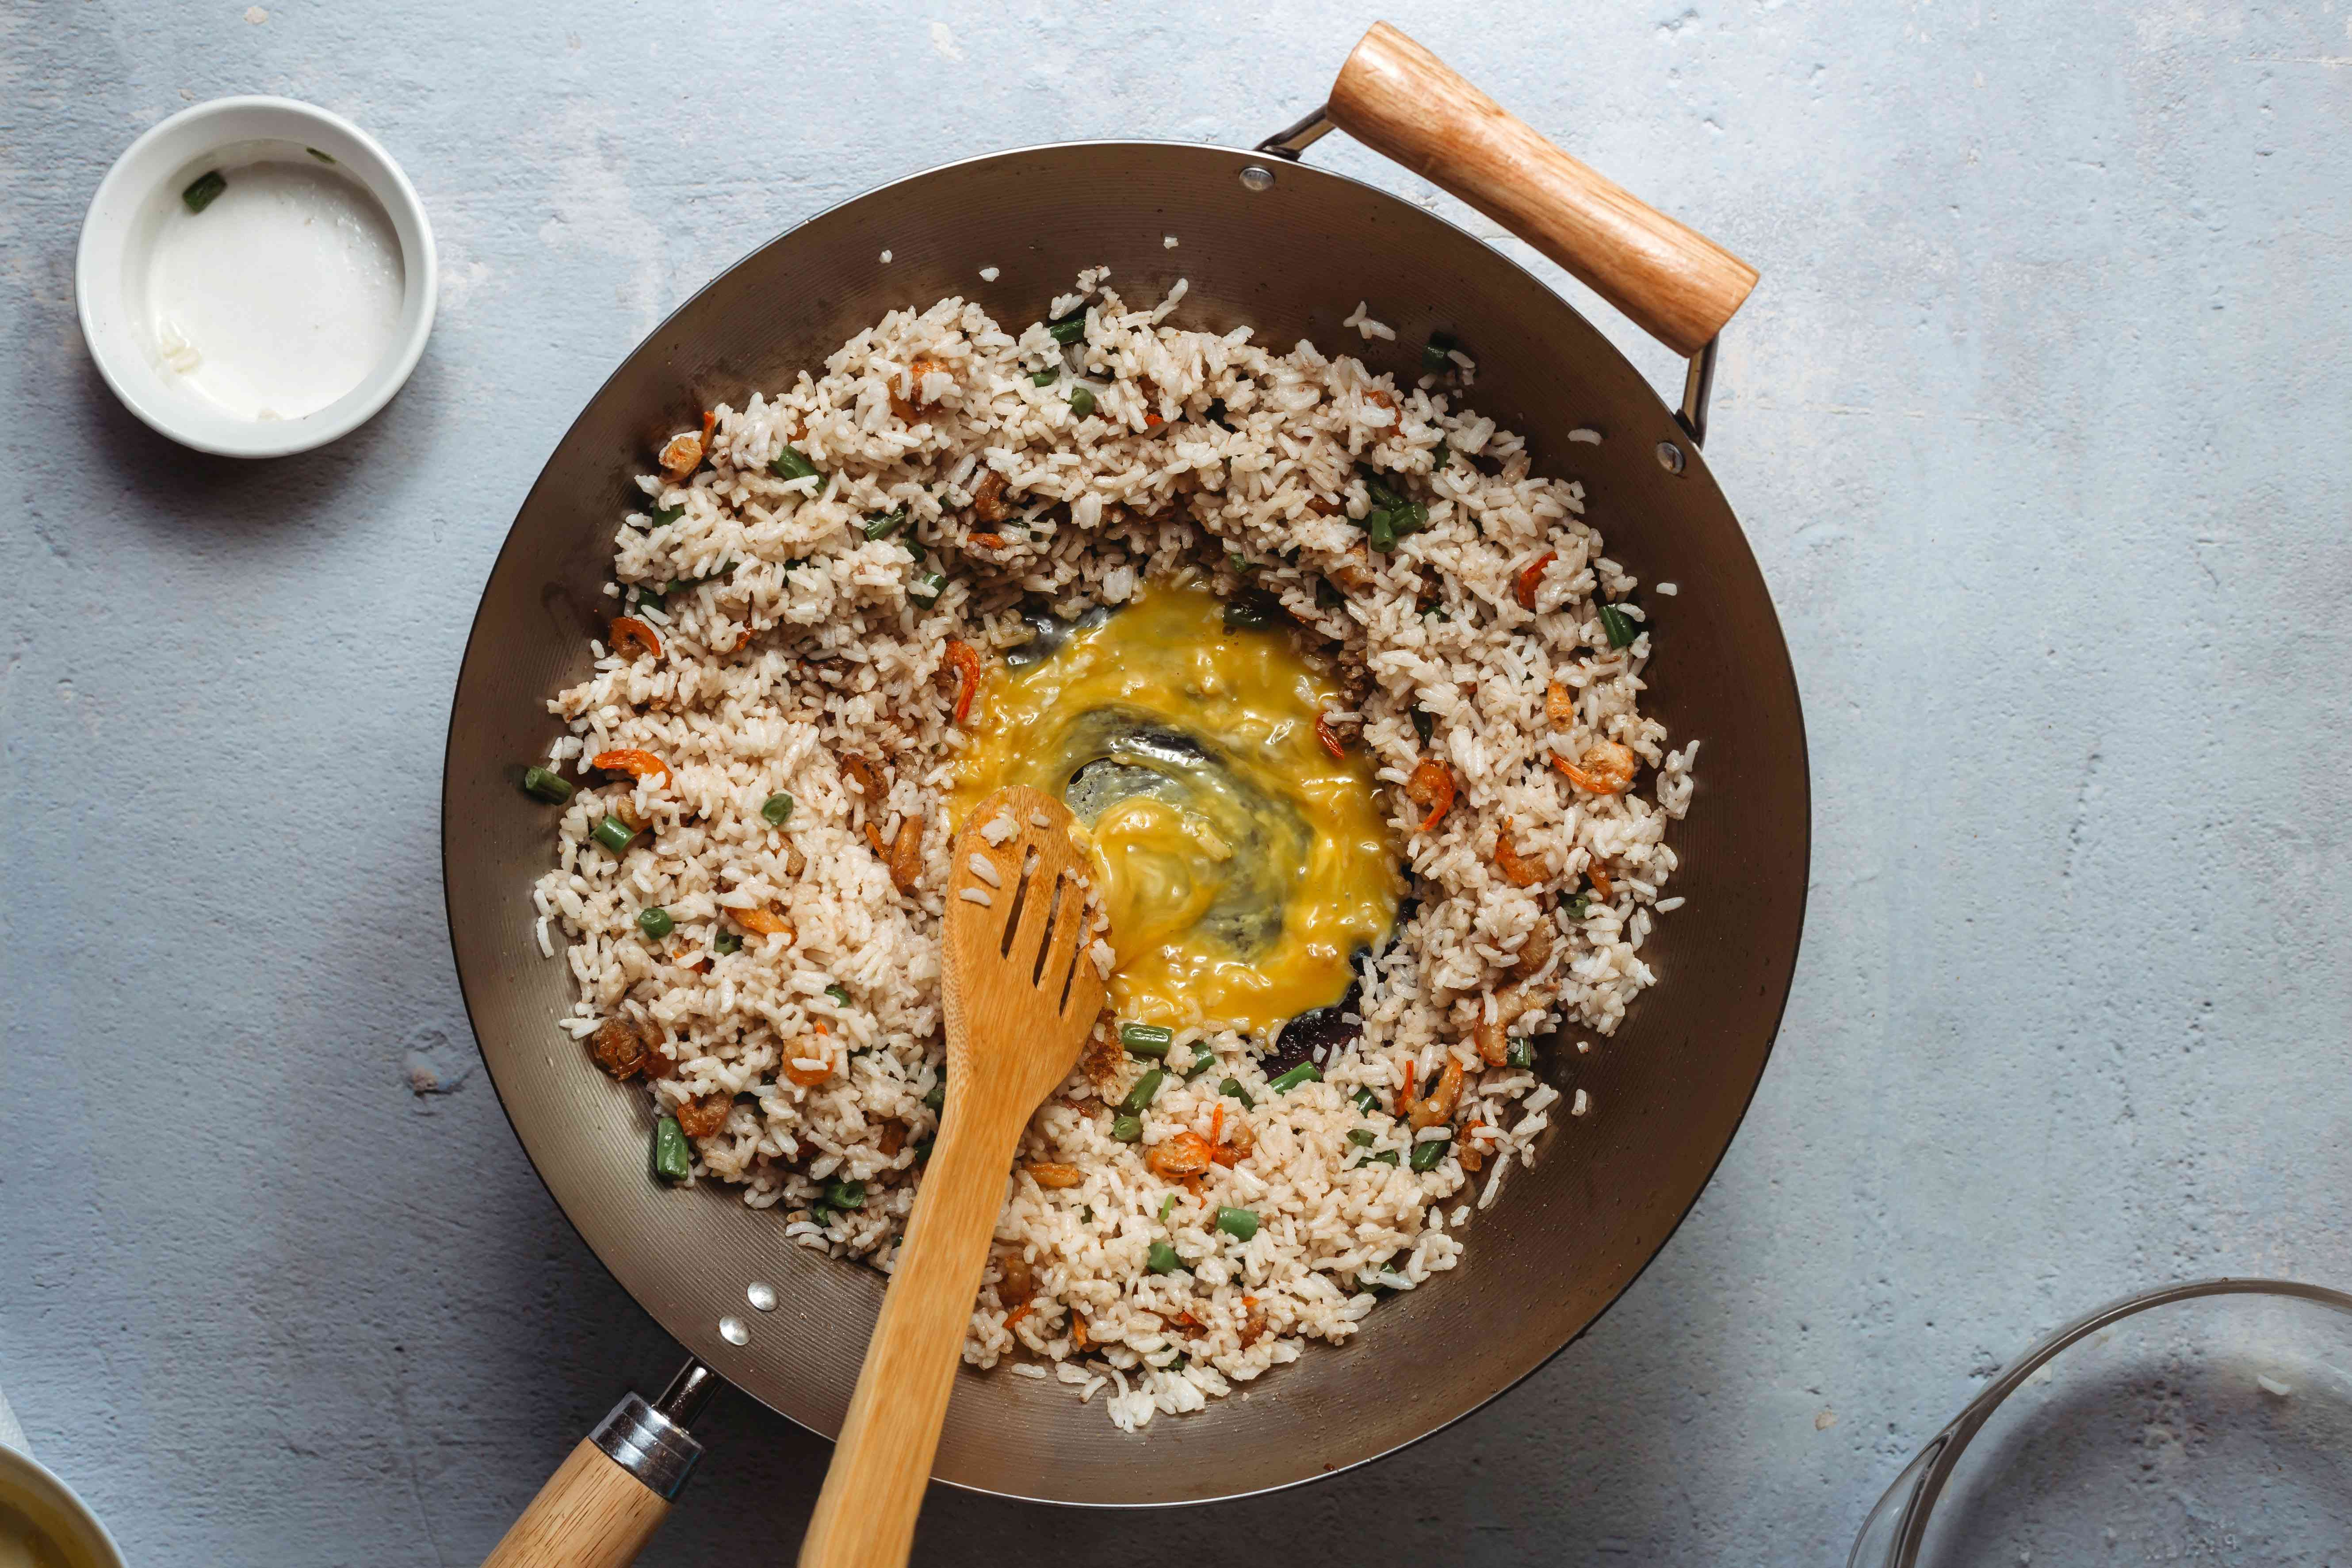 egg frying in the middle of the rice